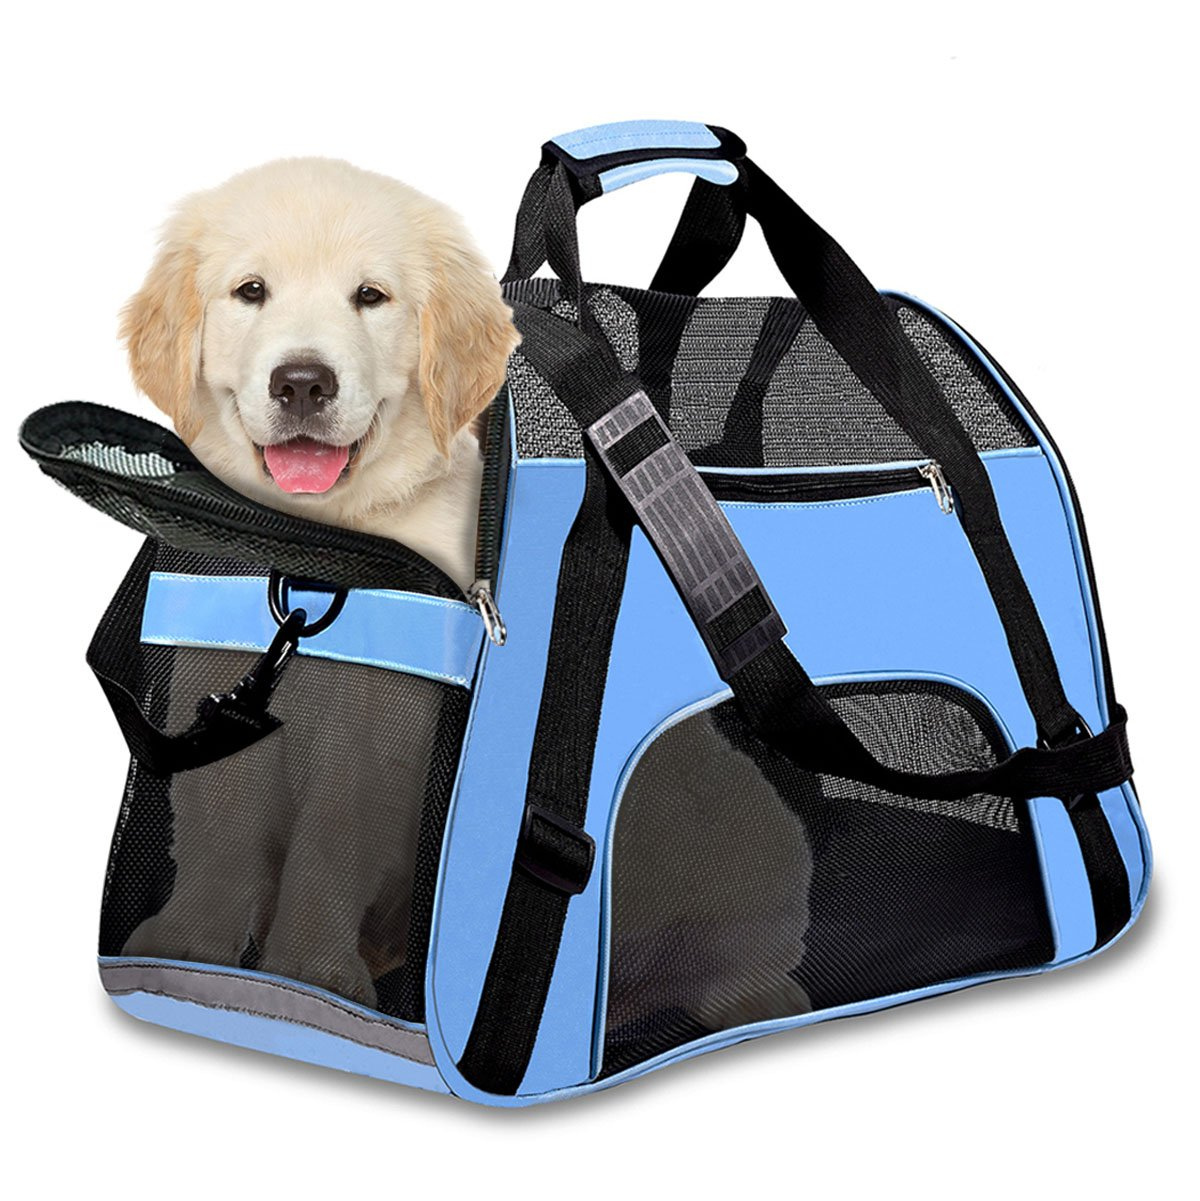 PPOGOO Pet Travel Carriers Soft Sided Portable Bags for Dogs and Cats Airline Approved Dog Carrier 22'' L x 10.2'' W x 13.8'' H Sky Blue by PPOGOO (Image #7)